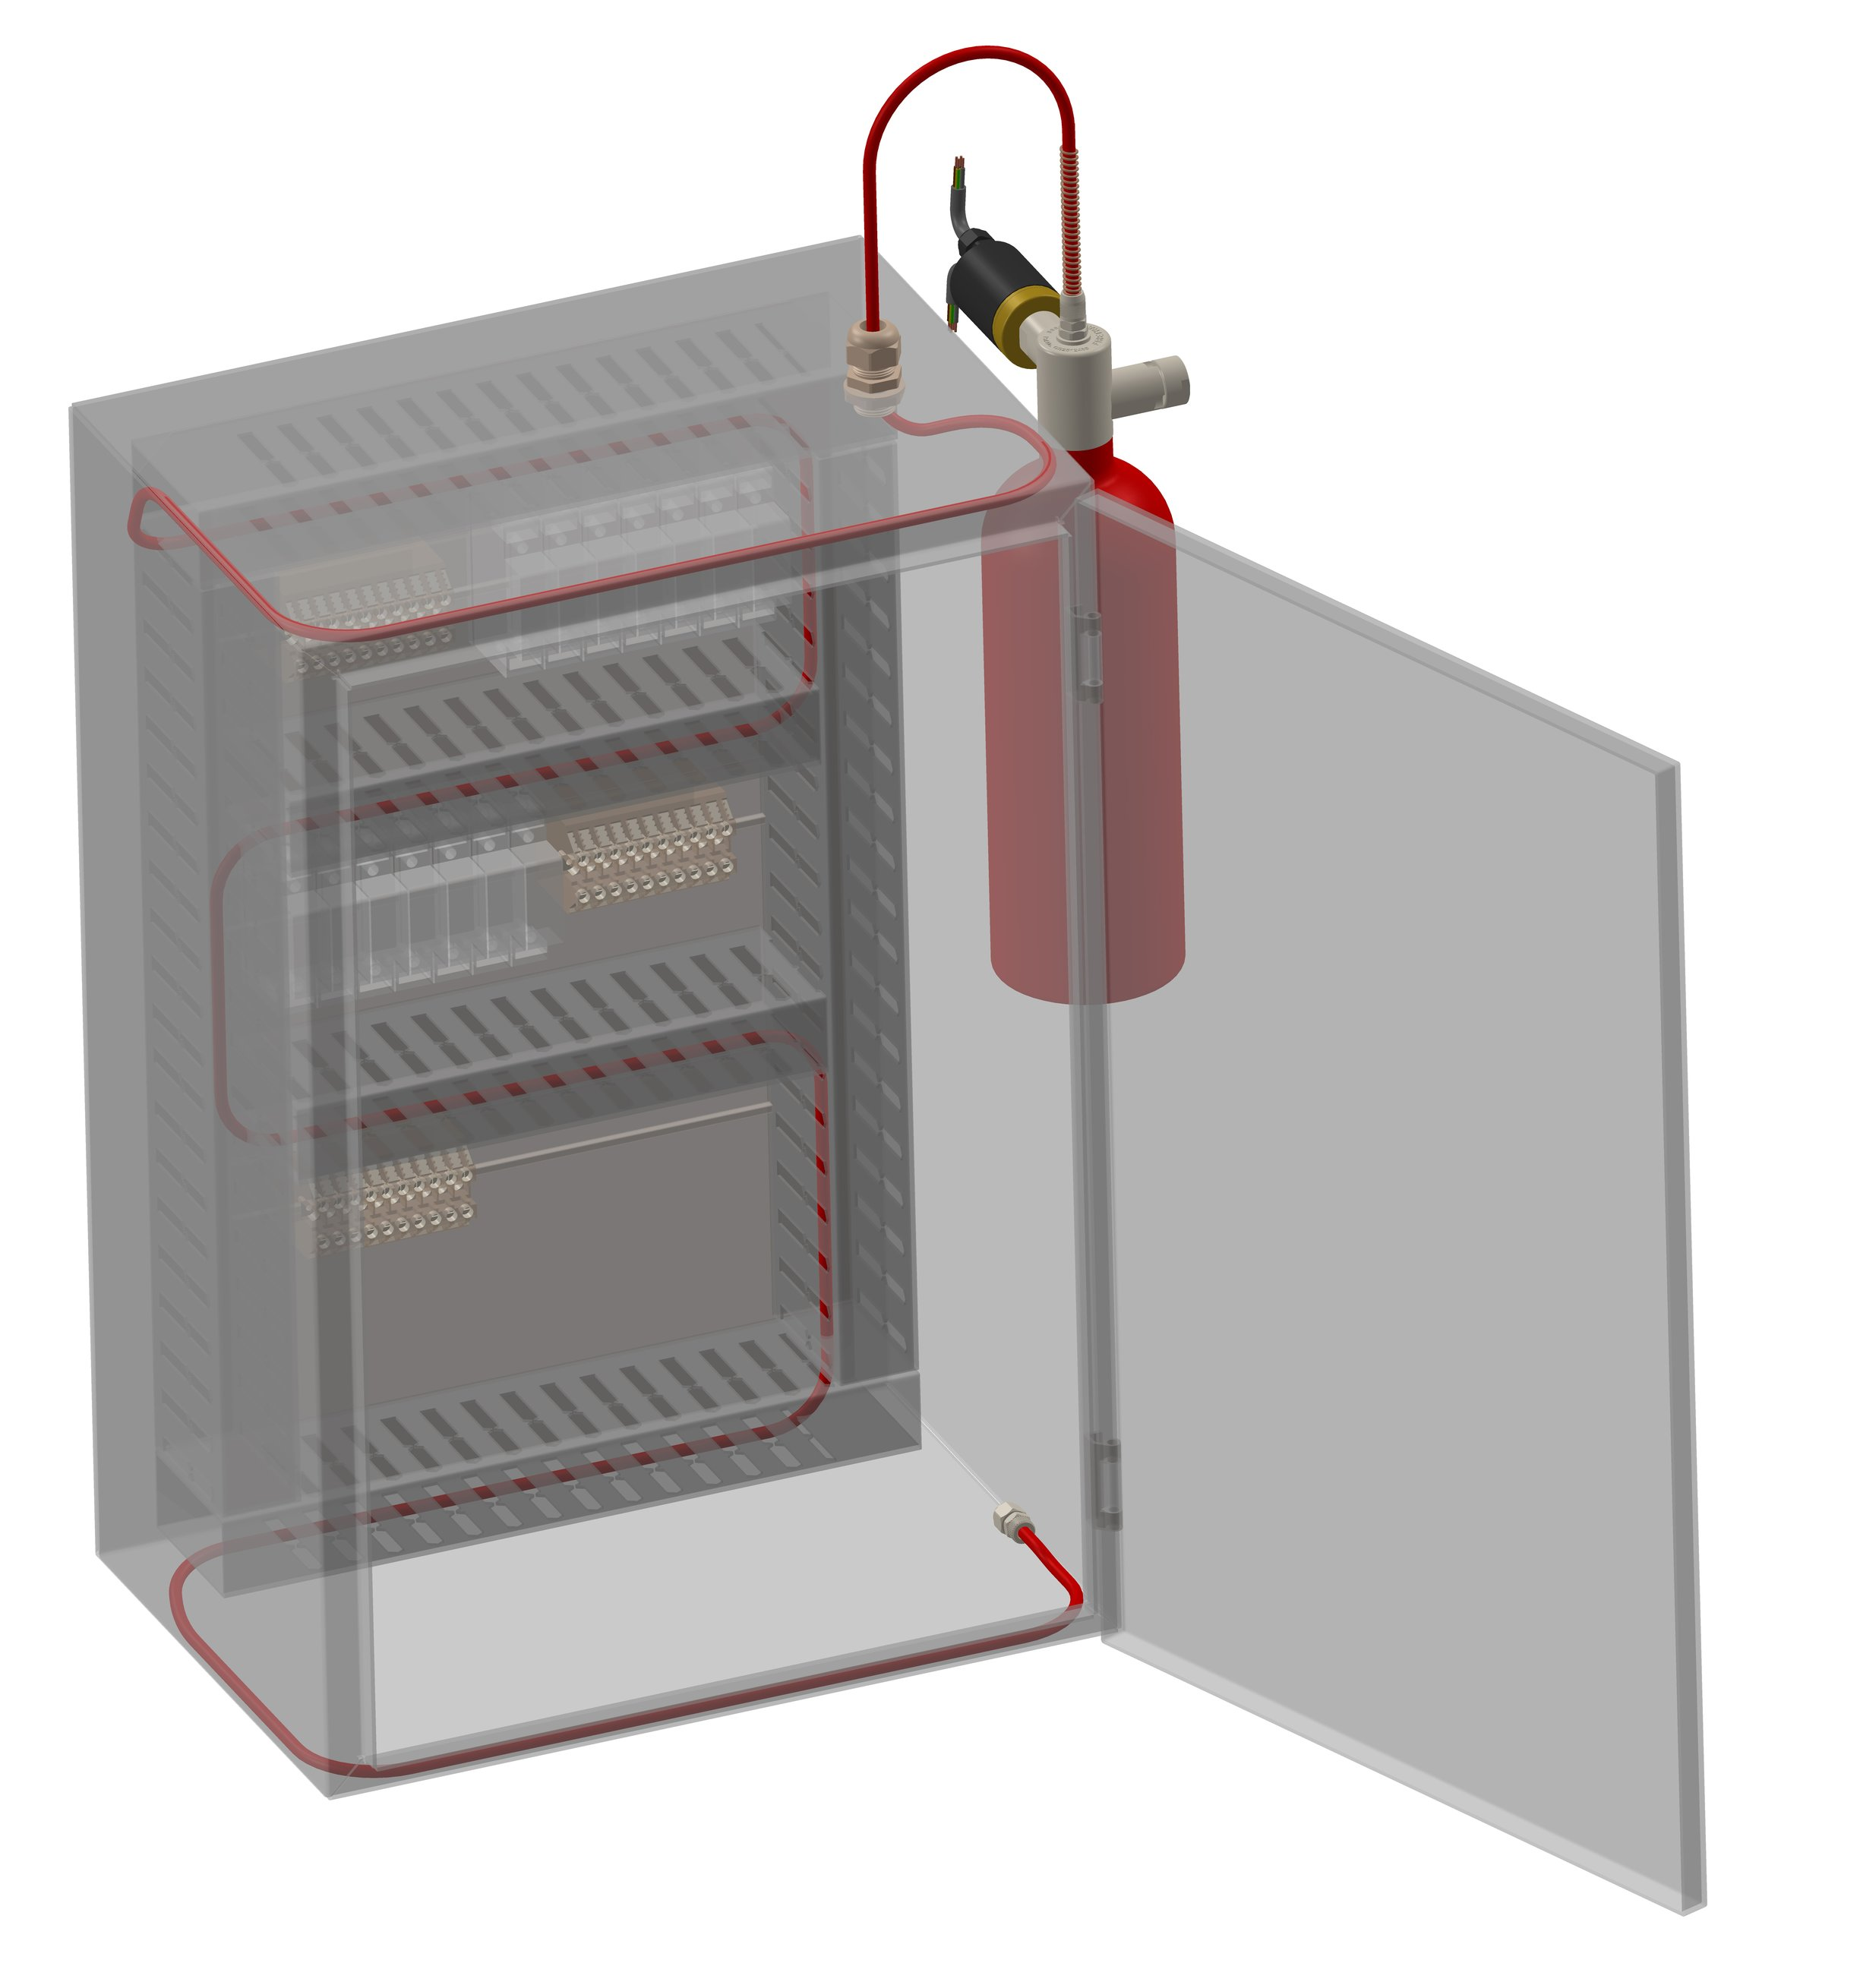 Electrical Fire Suppression Systems – Panels & Server Racks